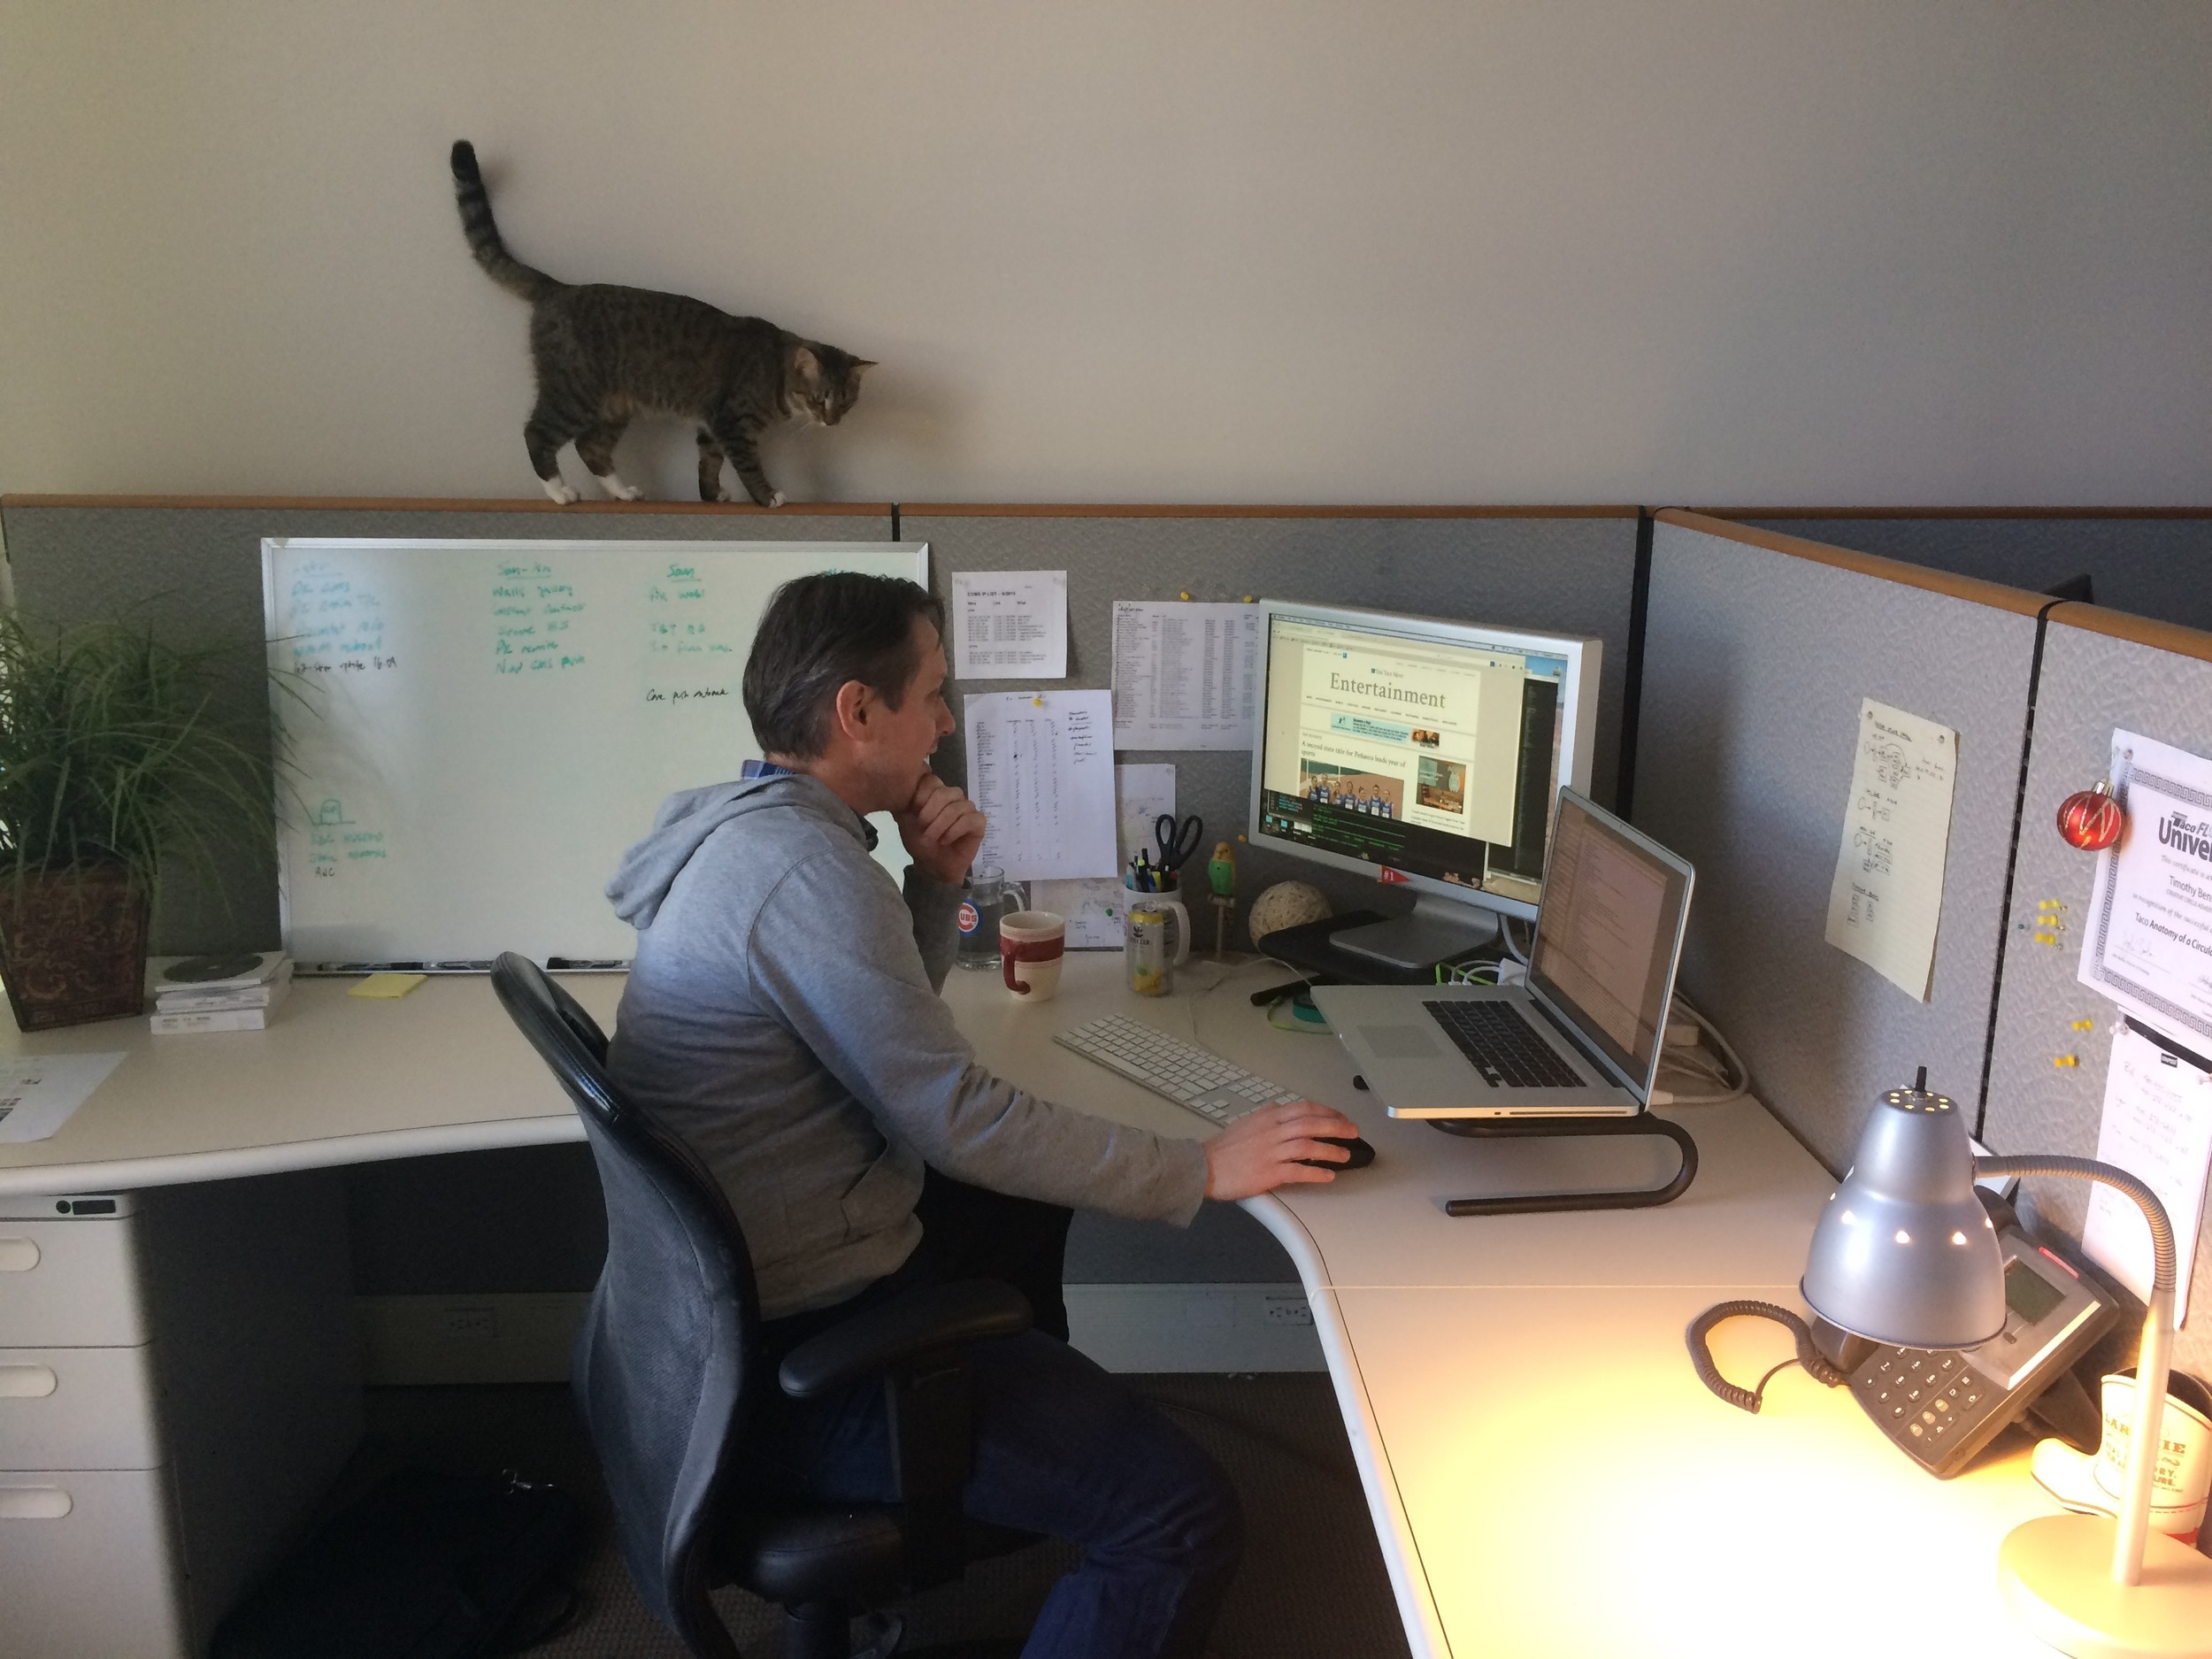 Tim Benson, our lead programmer, works on building out a new site while Charlotte strolls by above.